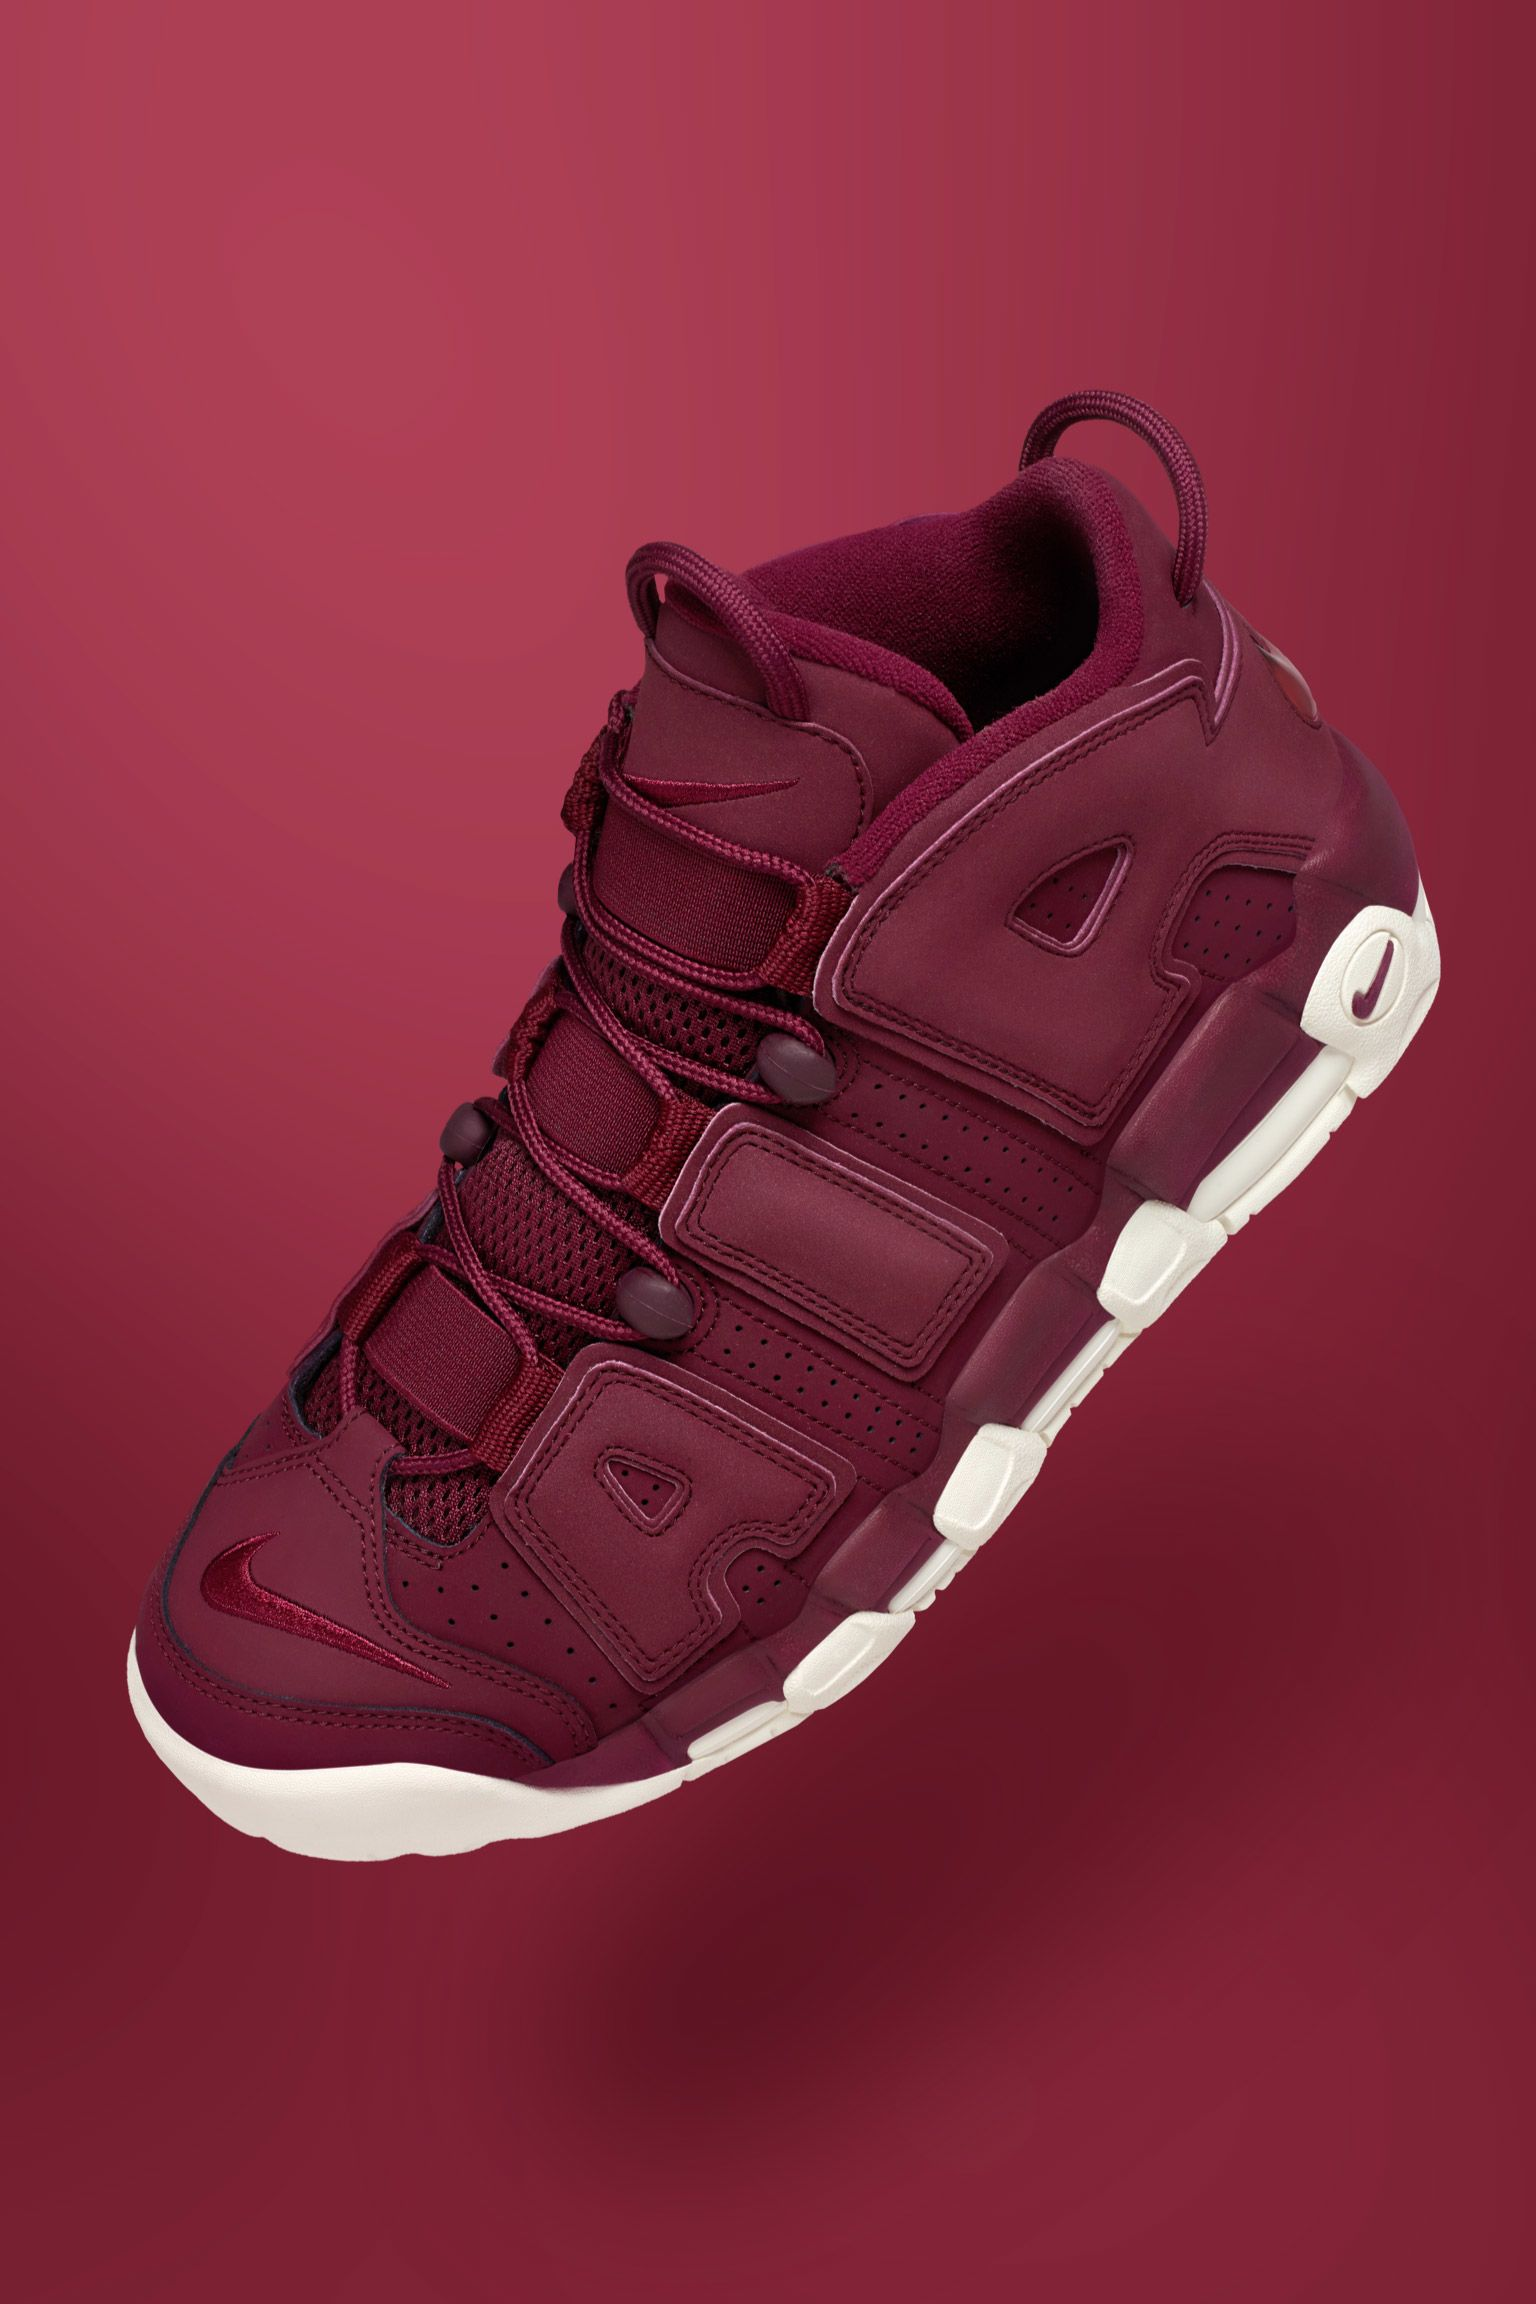 Nike Air More Uptempo 'Night Maroon' Select Retailers